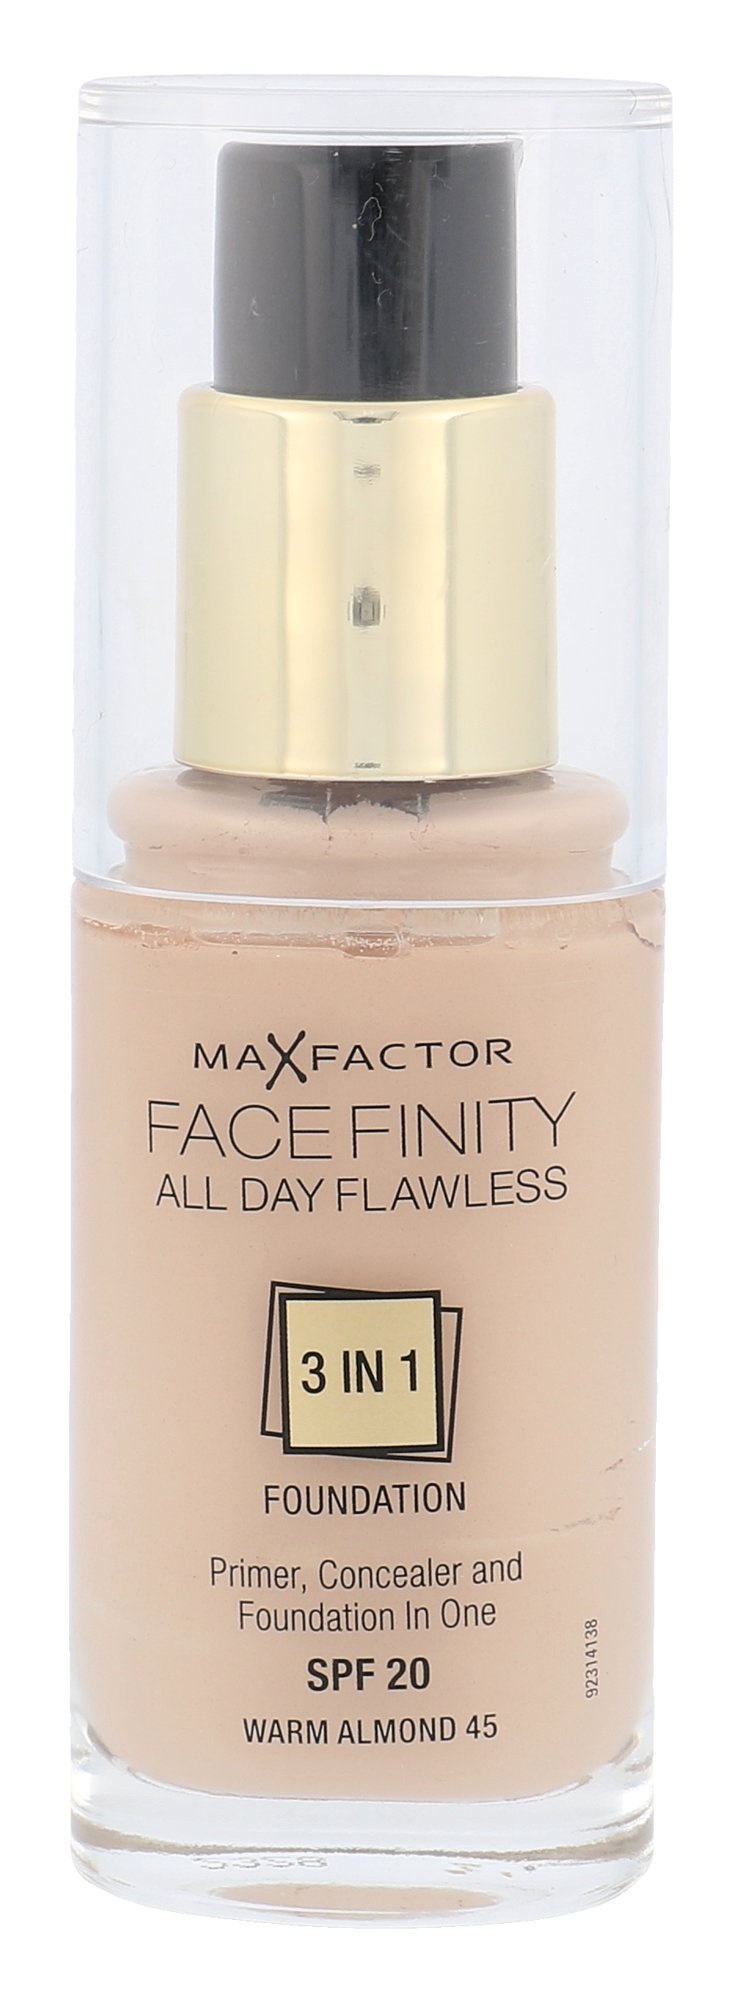 Max Factor Facefinity All Day Flawless 3in1 SPF20, Makeup 30ml